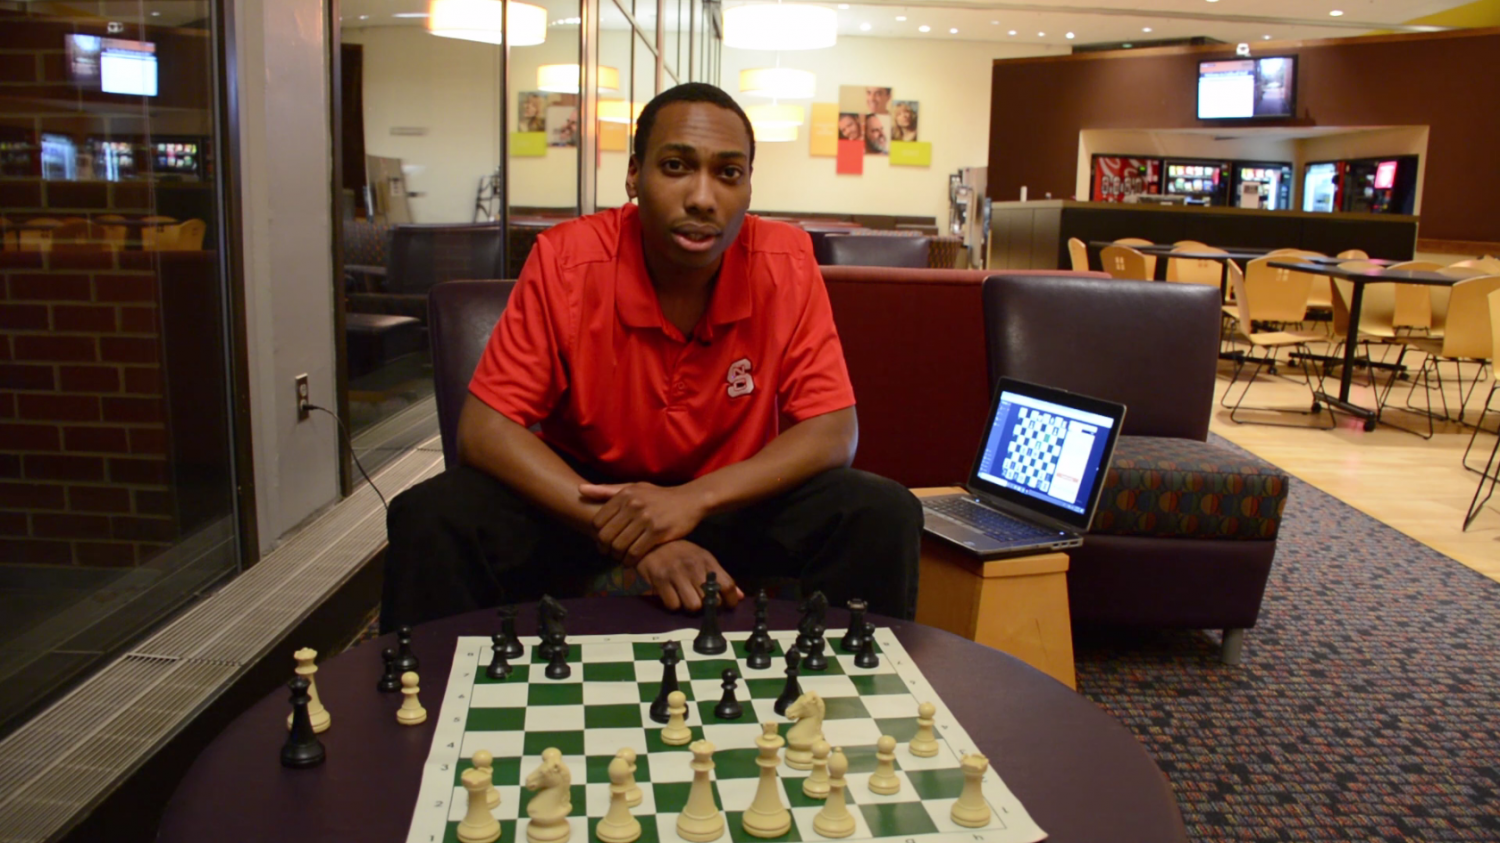 Justin Lockett sits at chess board